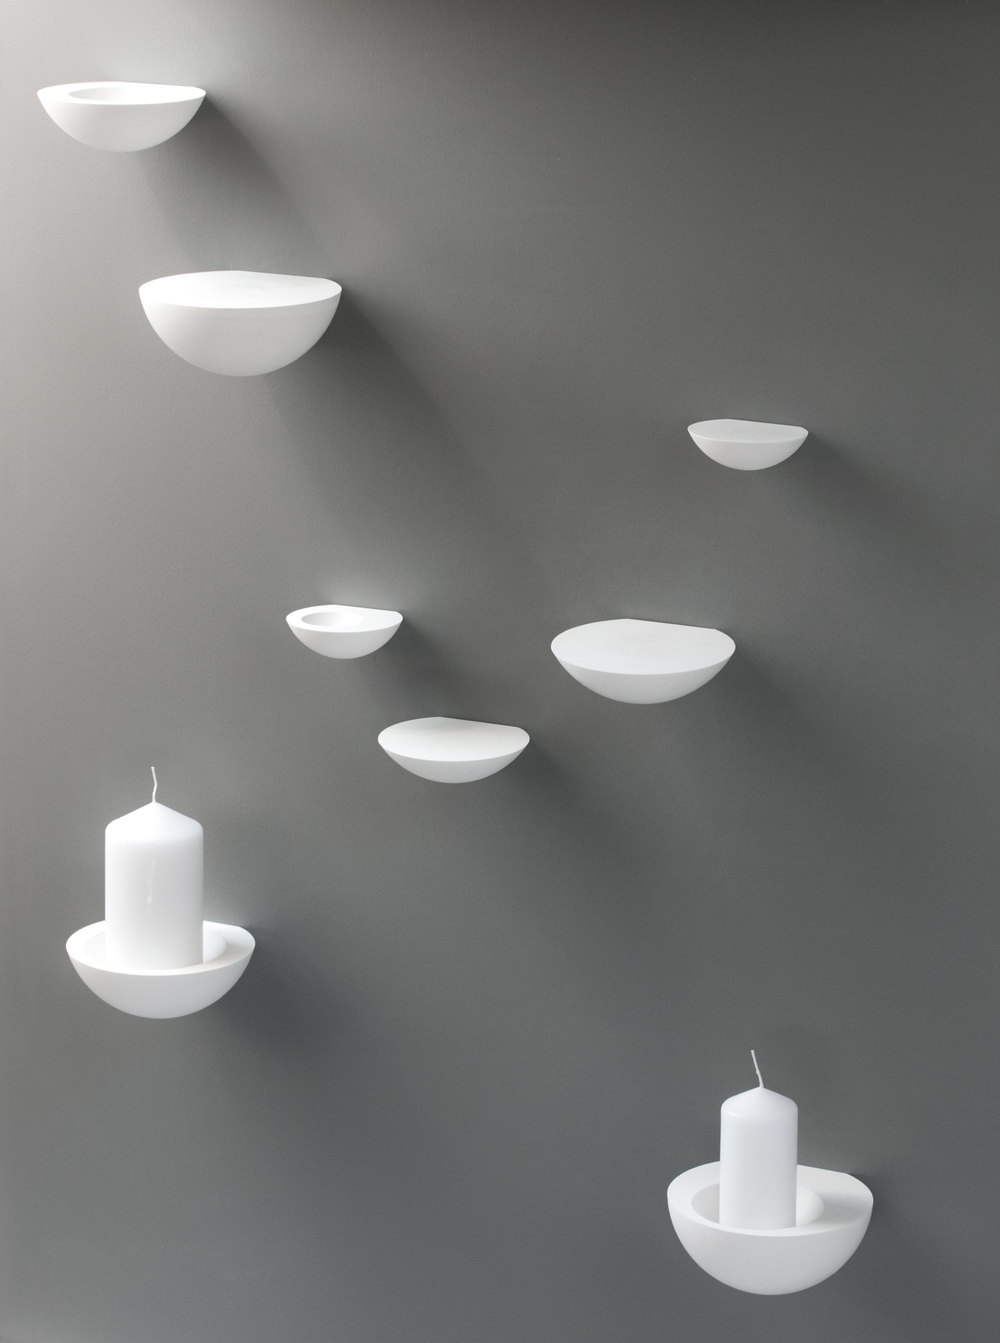 poast wall bowls candles